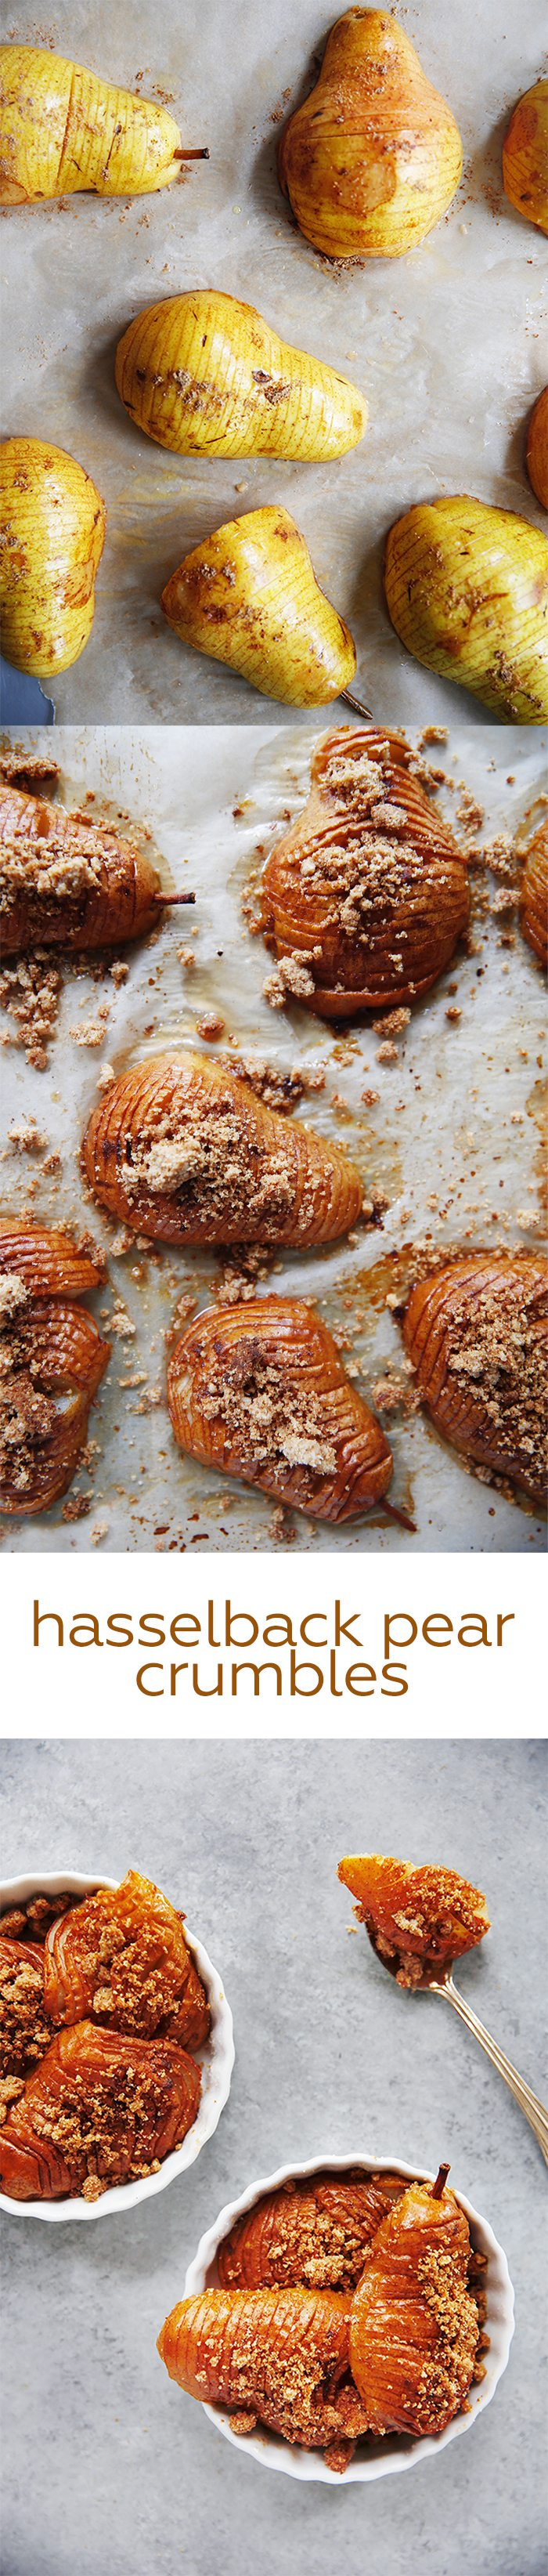 Hasselback Pear Crumbles